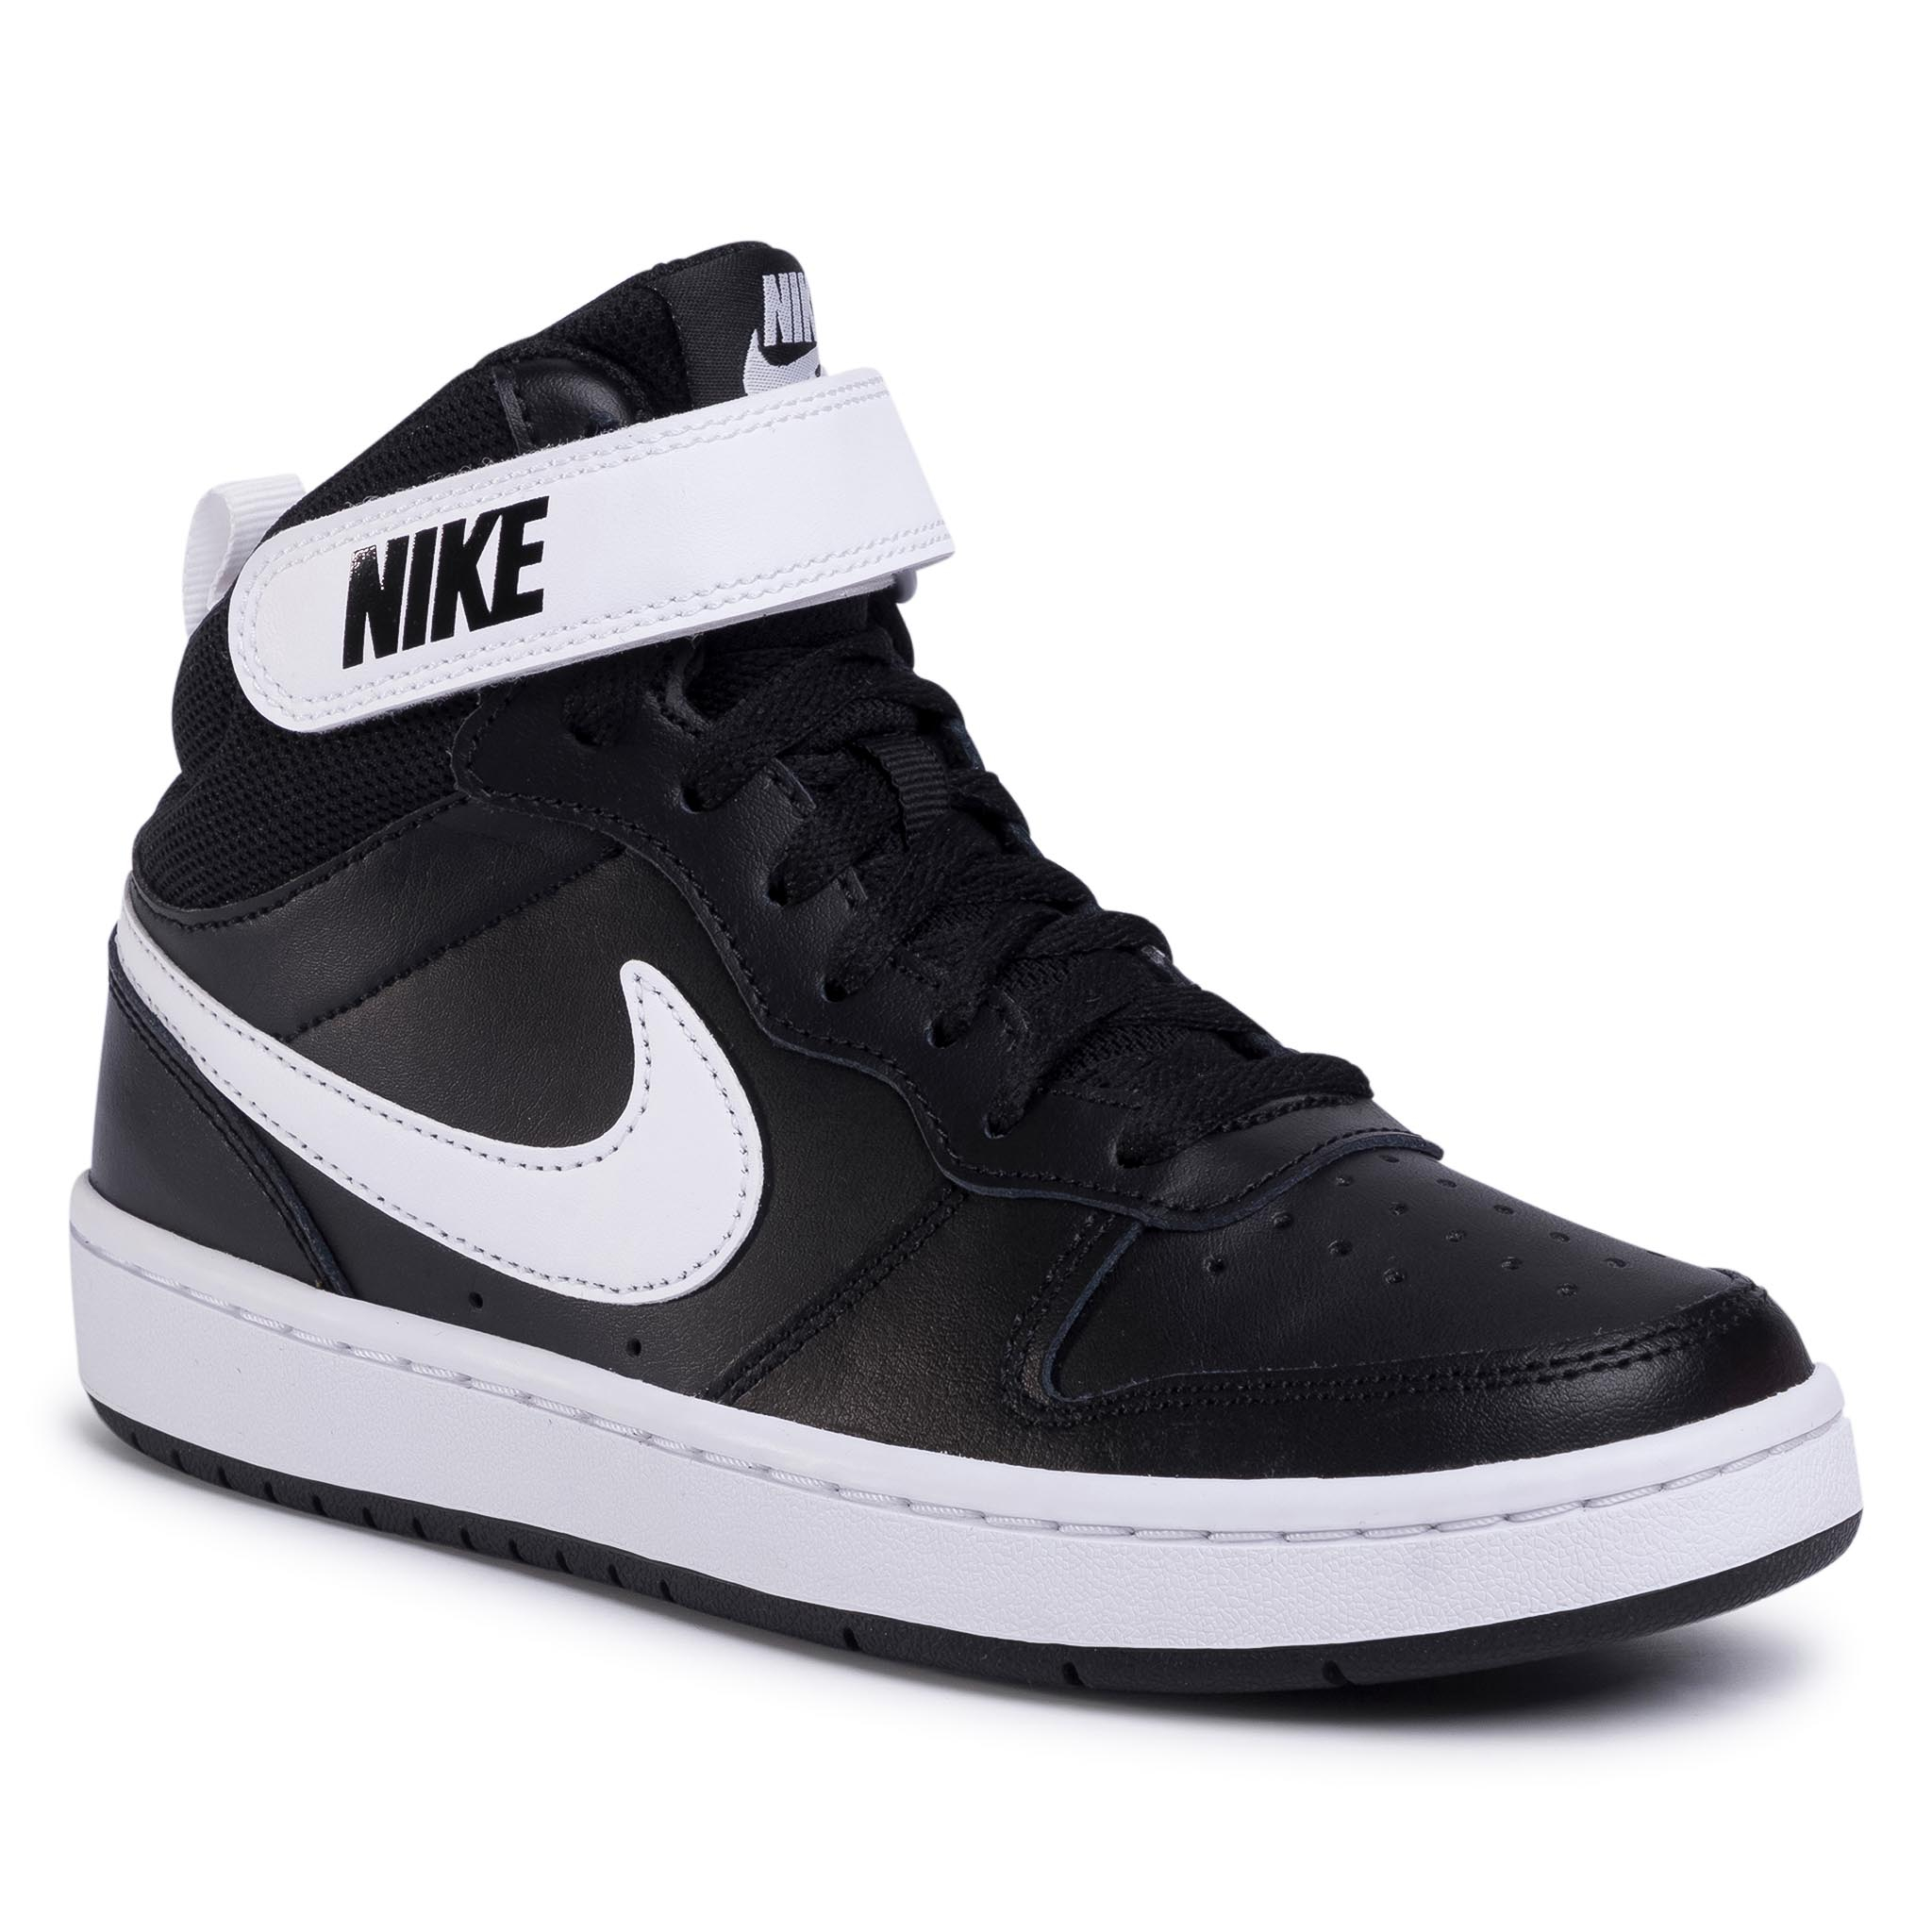 Topánky NIKE - Court Borough Mid 2 (GS) CD7782 010 Black/White